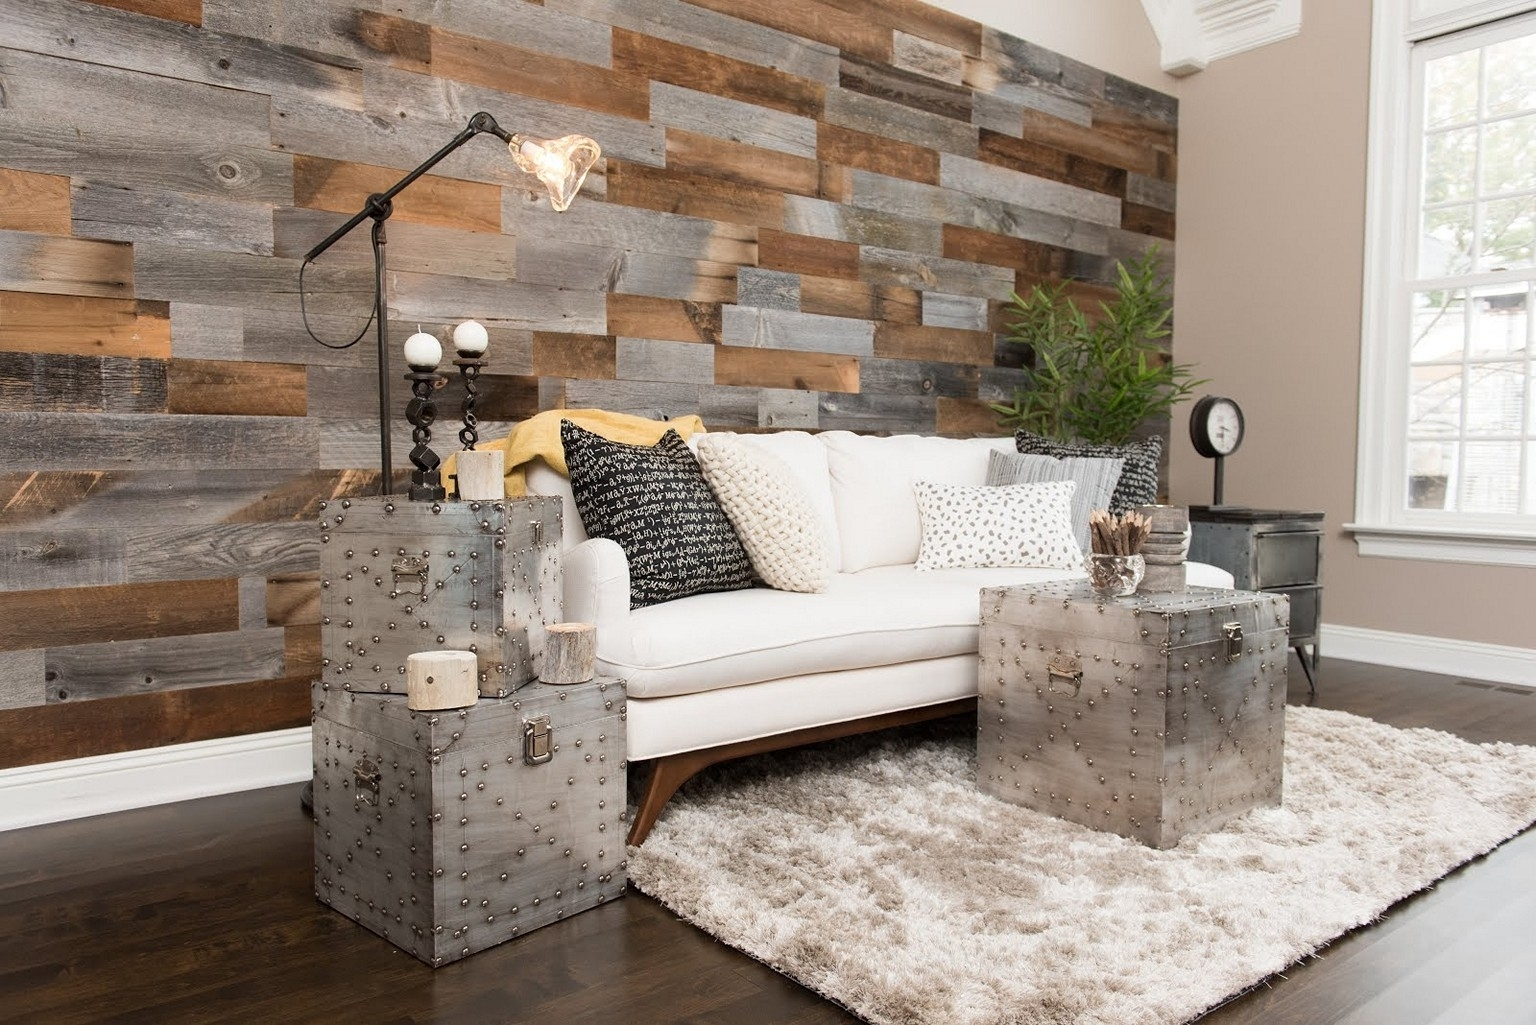 Barn Wood Wall Ideas • Walls Ideas In 2018 Wood Wall Accents (View 7 of 15)